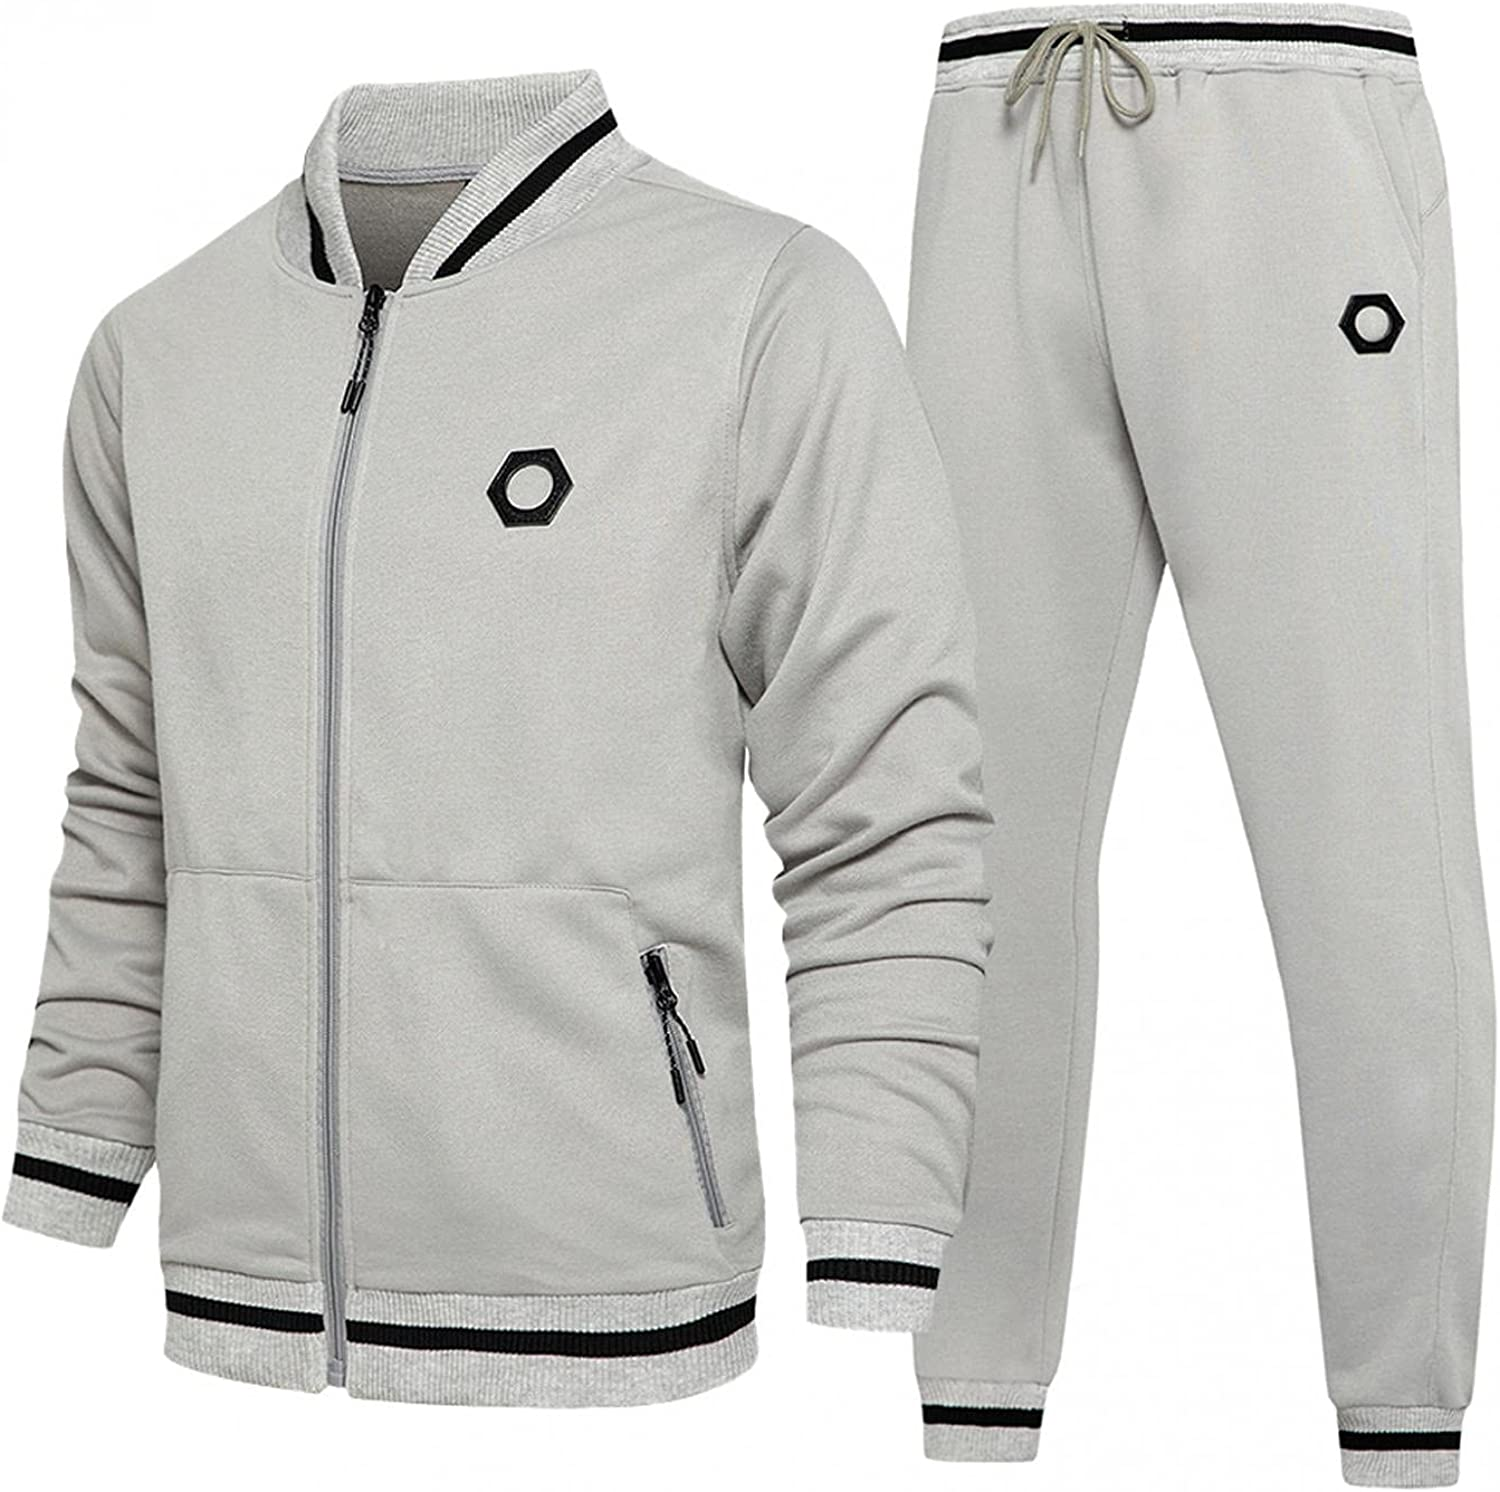 XUNFUN Men's Casual Tracksuit Long Sleeve Full-Zip Athletic Set Running Jogging Sports Jacket and Pants with Zipper Pockets